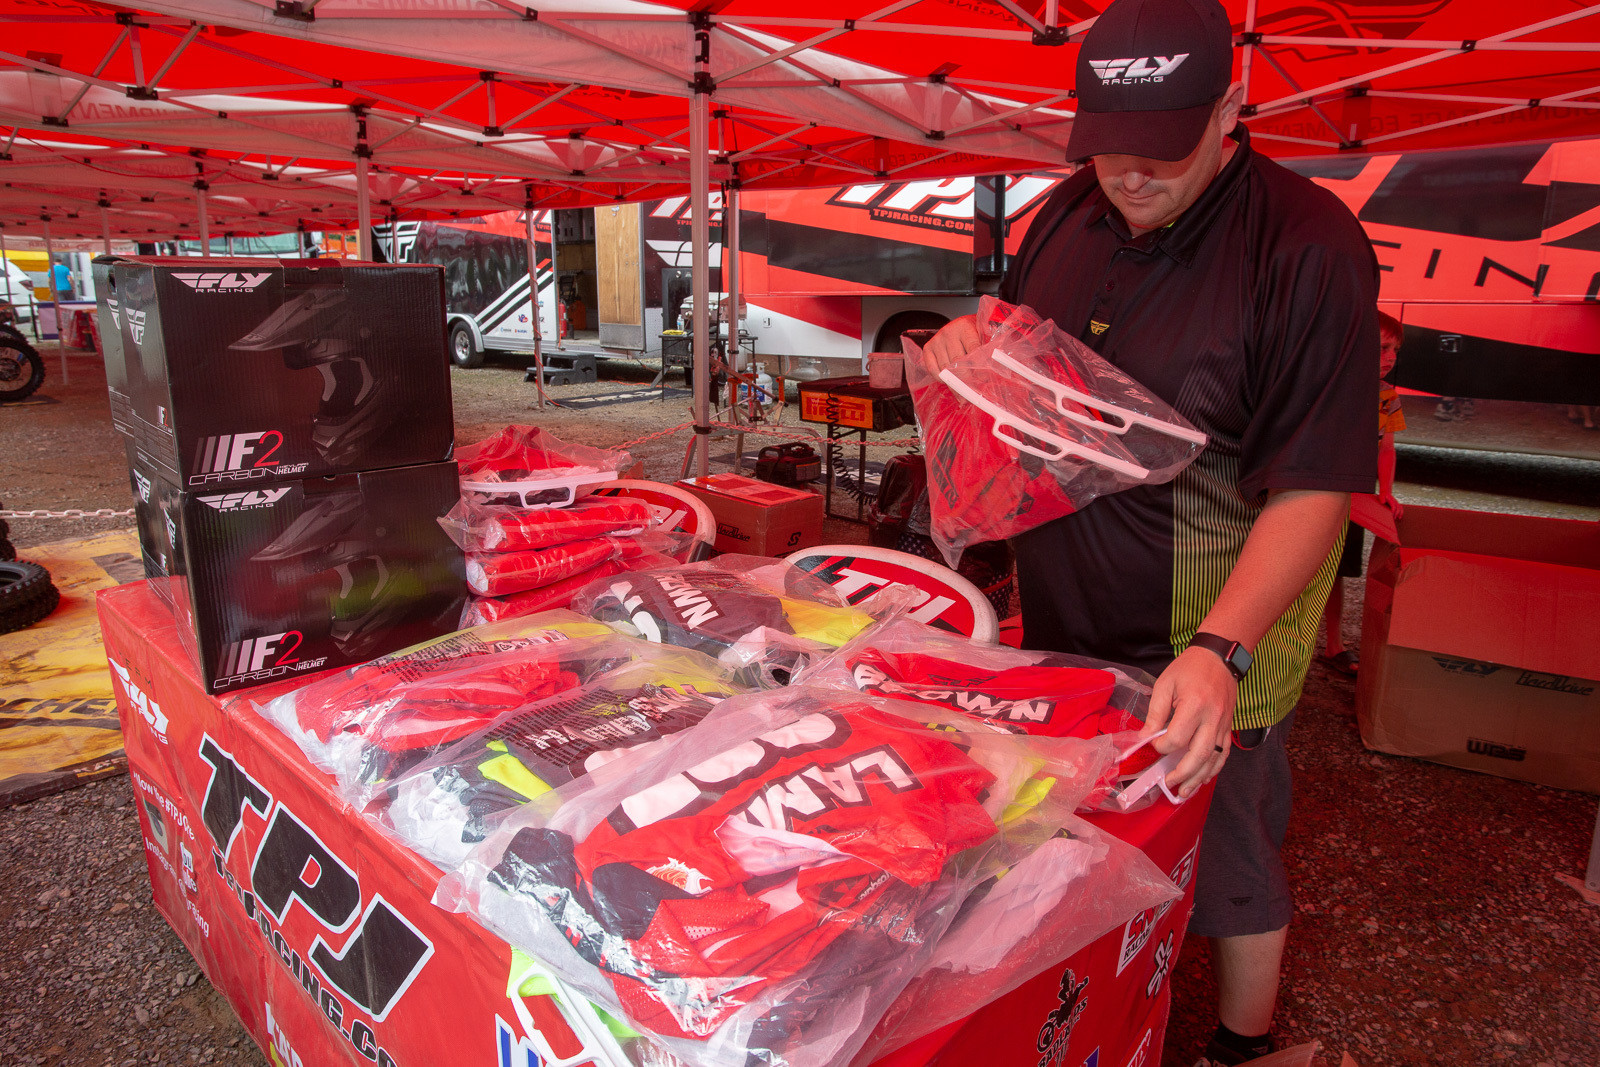 Fly's Max Steffans doing his gear sorting and delivery on Friday morning. What you see here is the gear for the Phoenix Racing guys. There were several other tables full of other gear, and it's pretty amazing the amount of product they dispense every weekend to their sponsored riders.